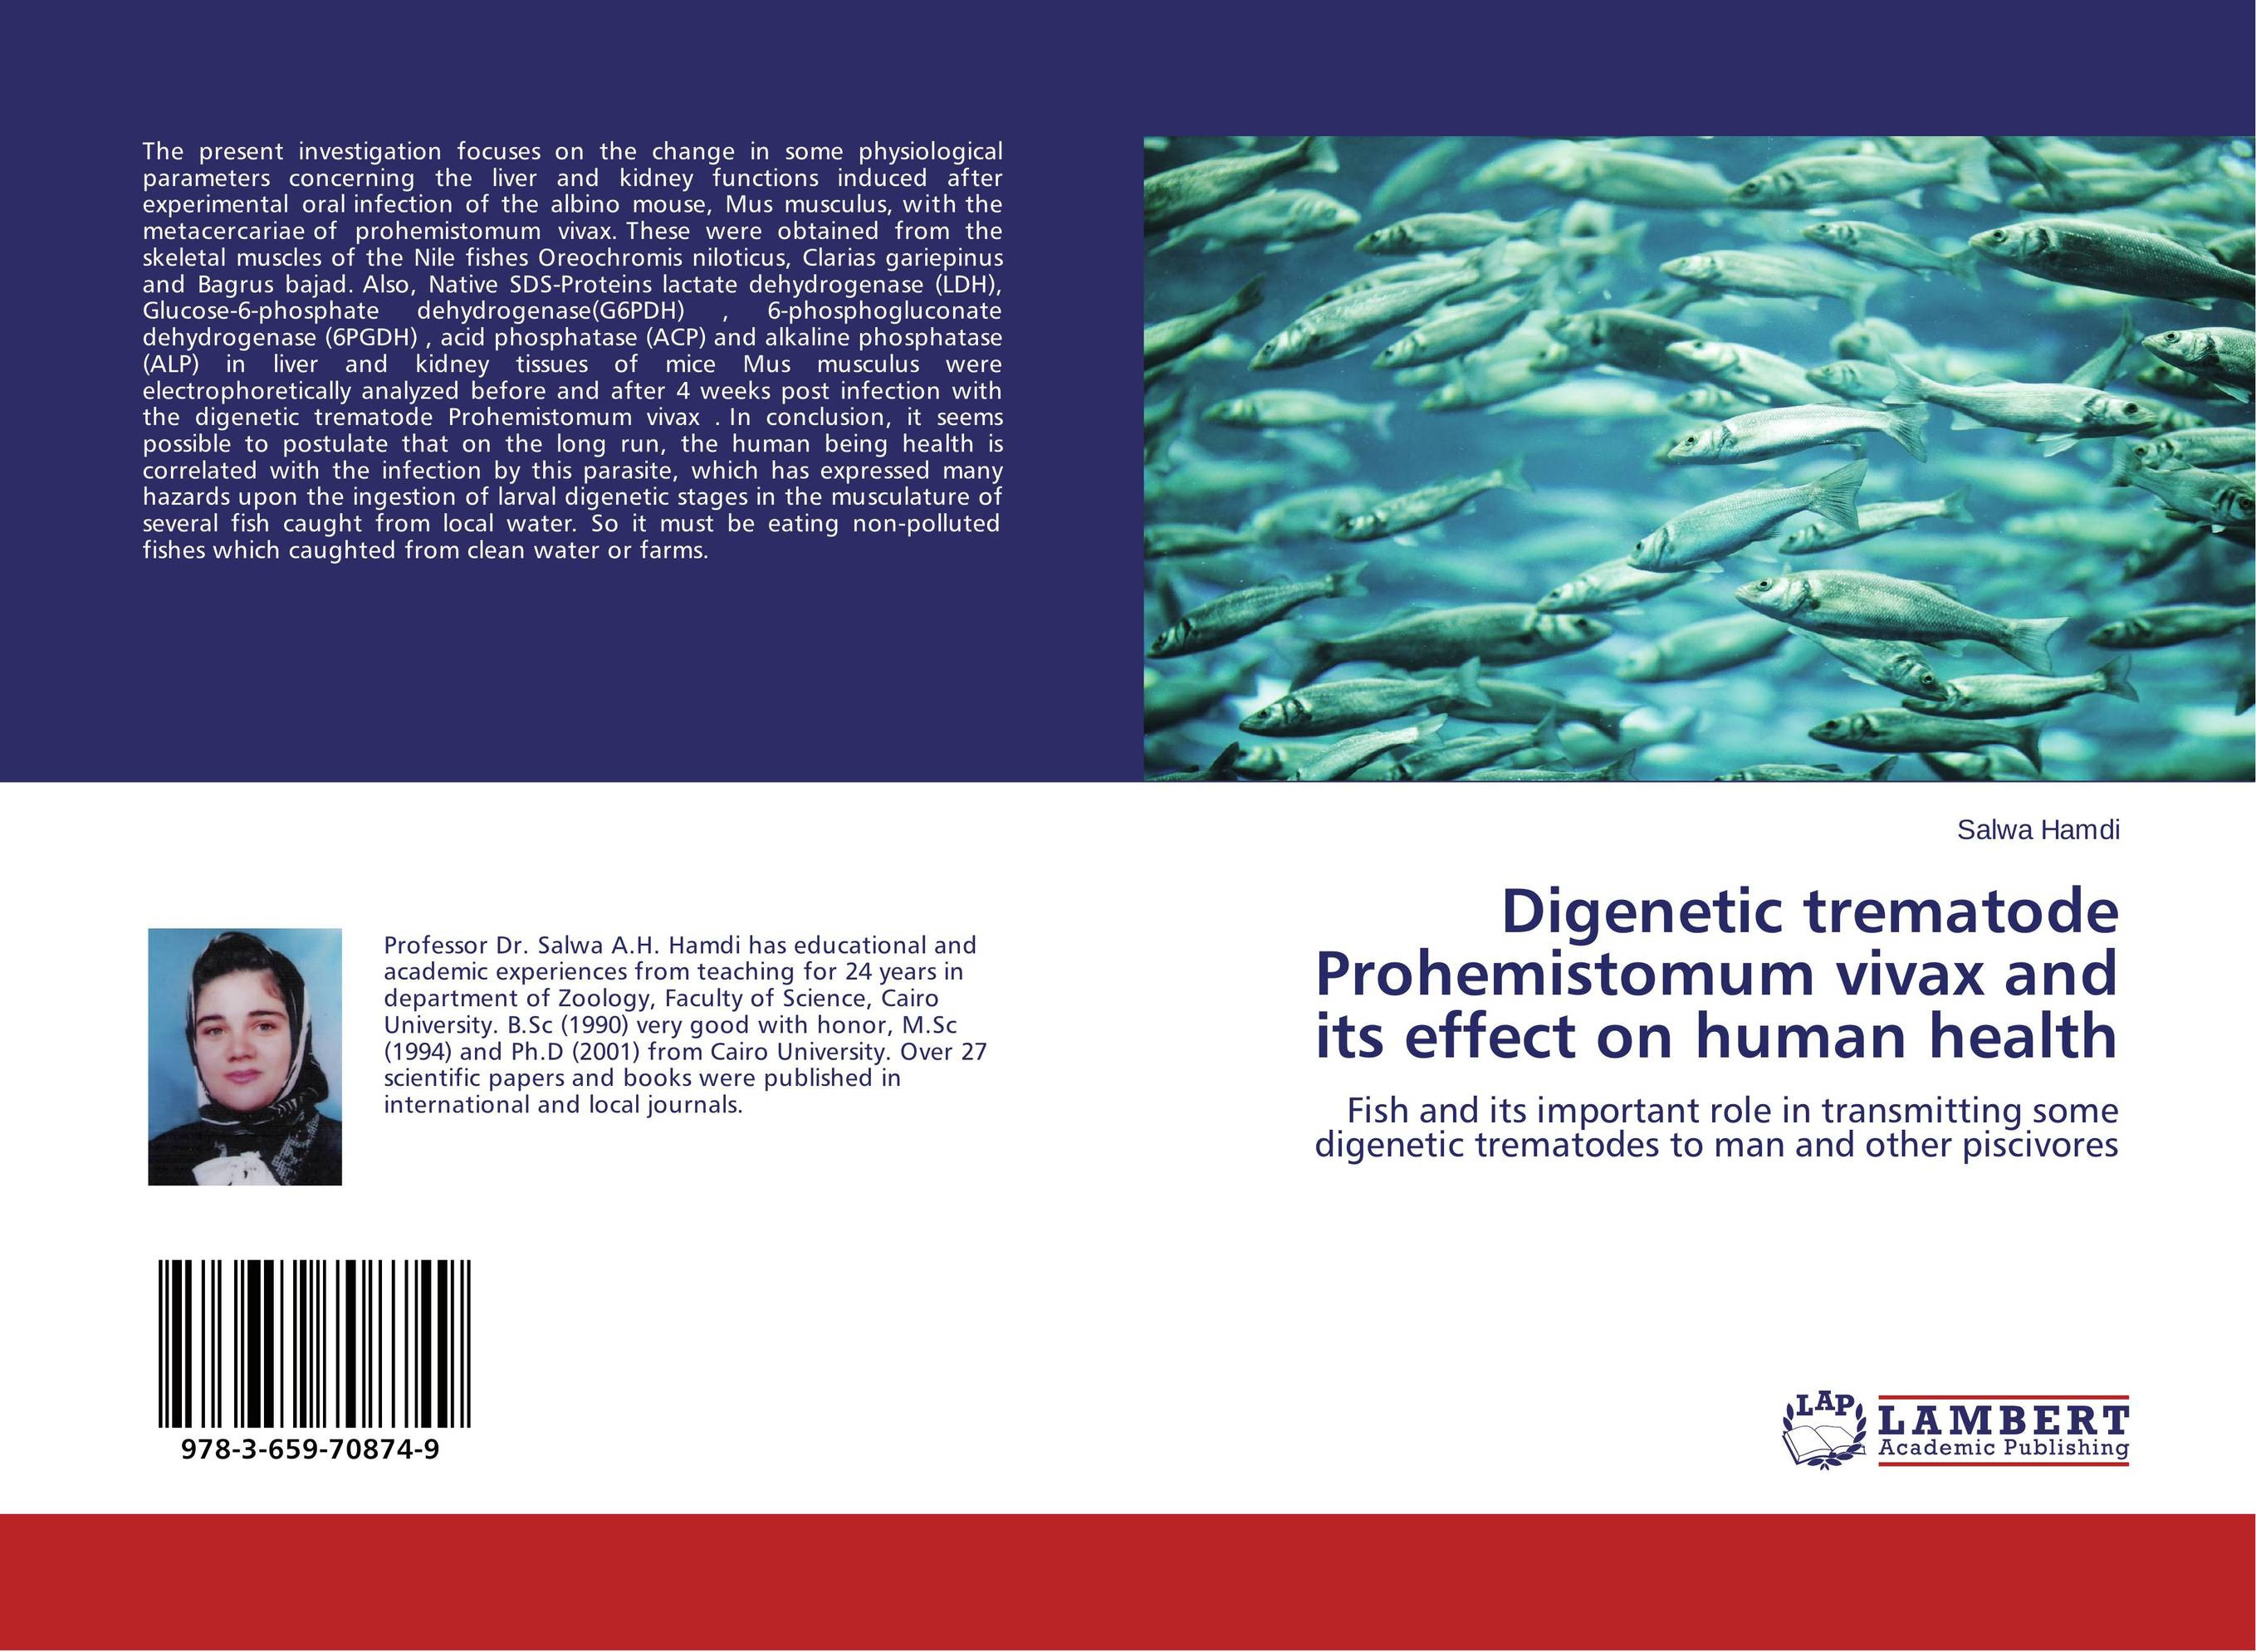 Digenetic trematode Prohemistomum vivax and its effect on human health roles of selenium in farms and in human health